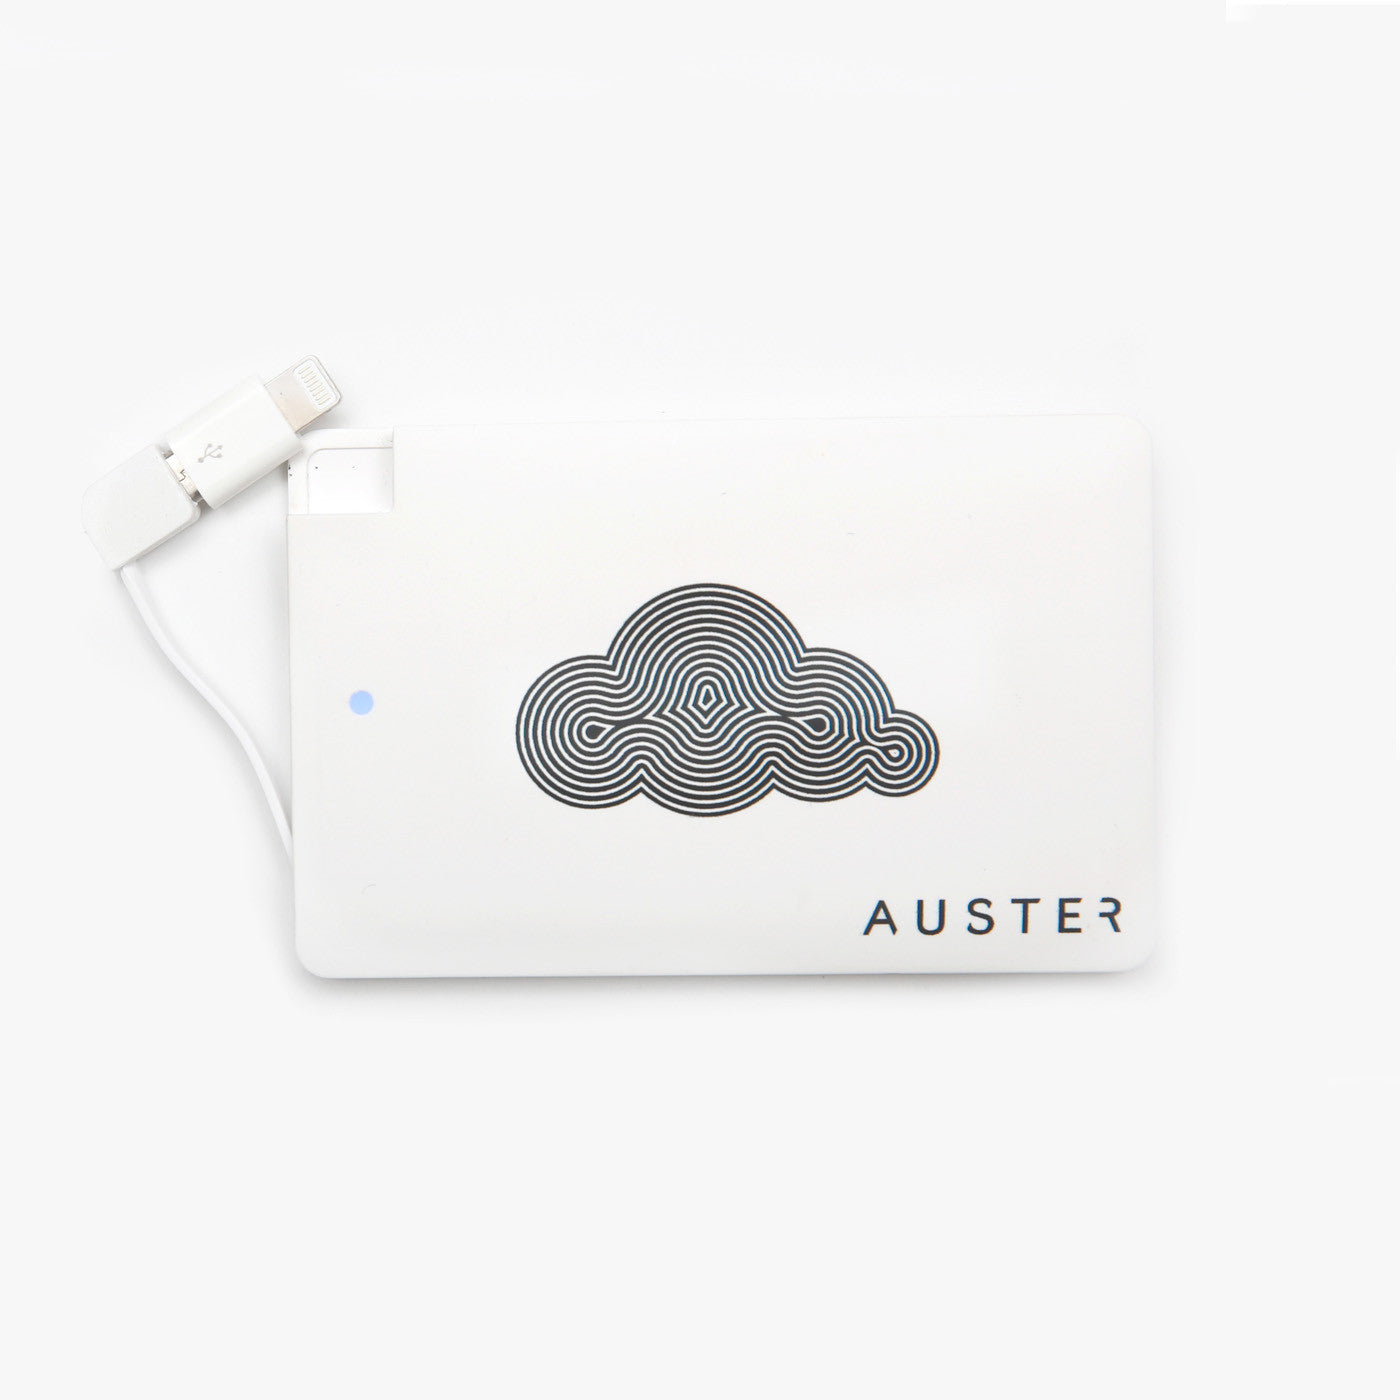 ONE AUSTER 2600 mAh POWERBANK – WHITE<br>(so you never run out of juice)